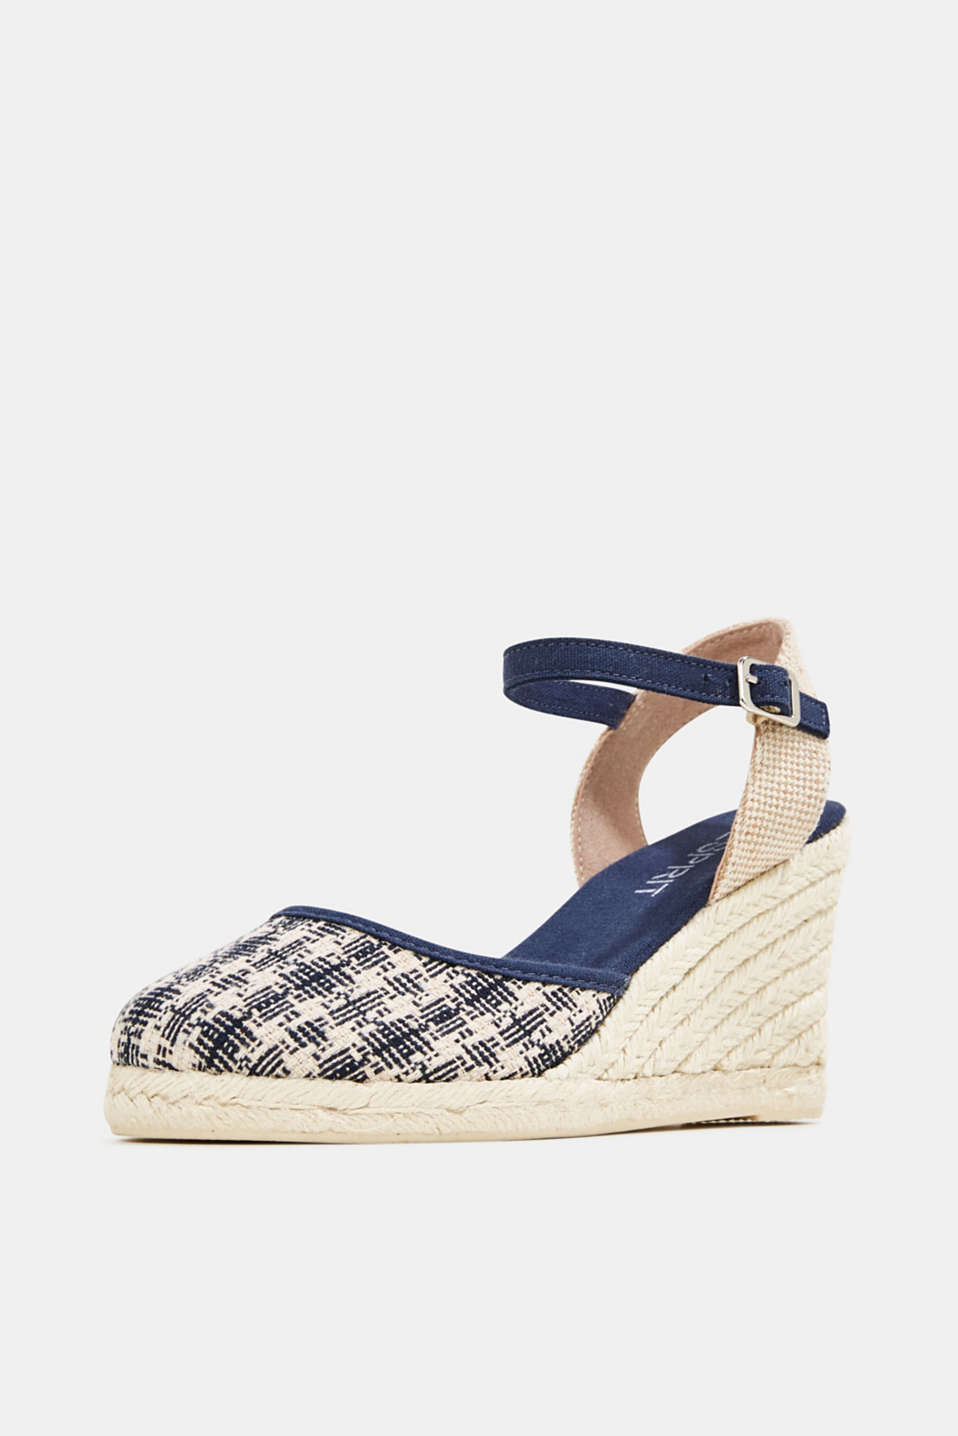 Espadrille sandals with a wedge heel, NAVY, detail image number 2